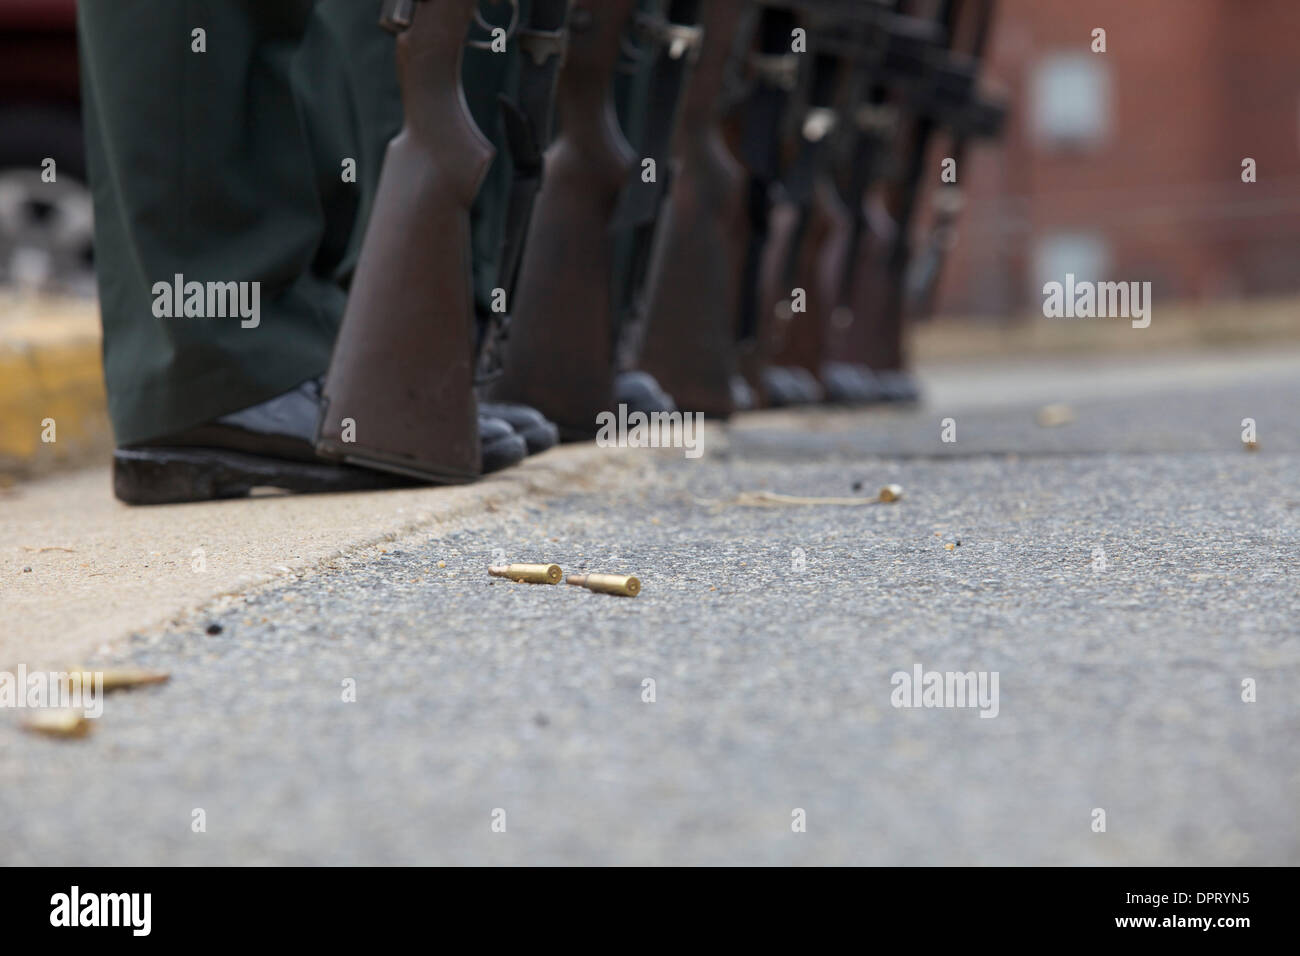 Feb. 26, 2009 - Joint Base Myer-Henderson Hall, Virginia, U.S. - Empty blanks lay on the ground during a practice session for the firing party. .(Credit Image: © Kate Karwan Burgess/ZUMAPRESS.com) - Stock Image